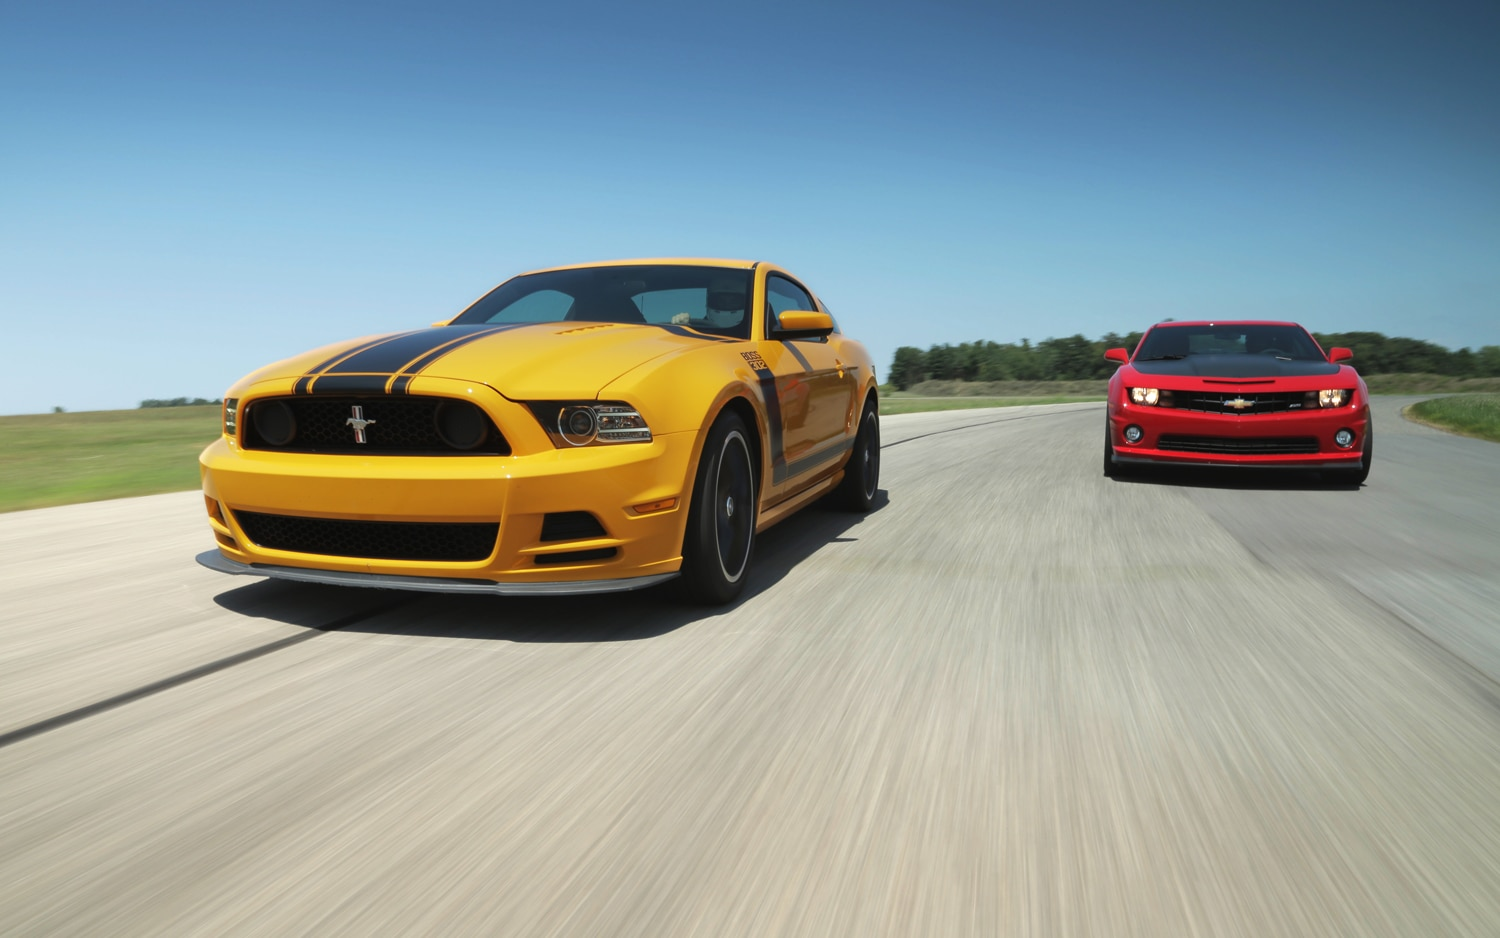 2013 Ford Mustang Boss 302 Vs 2013 Chevrolet Camaro SS 1LE Front View 31